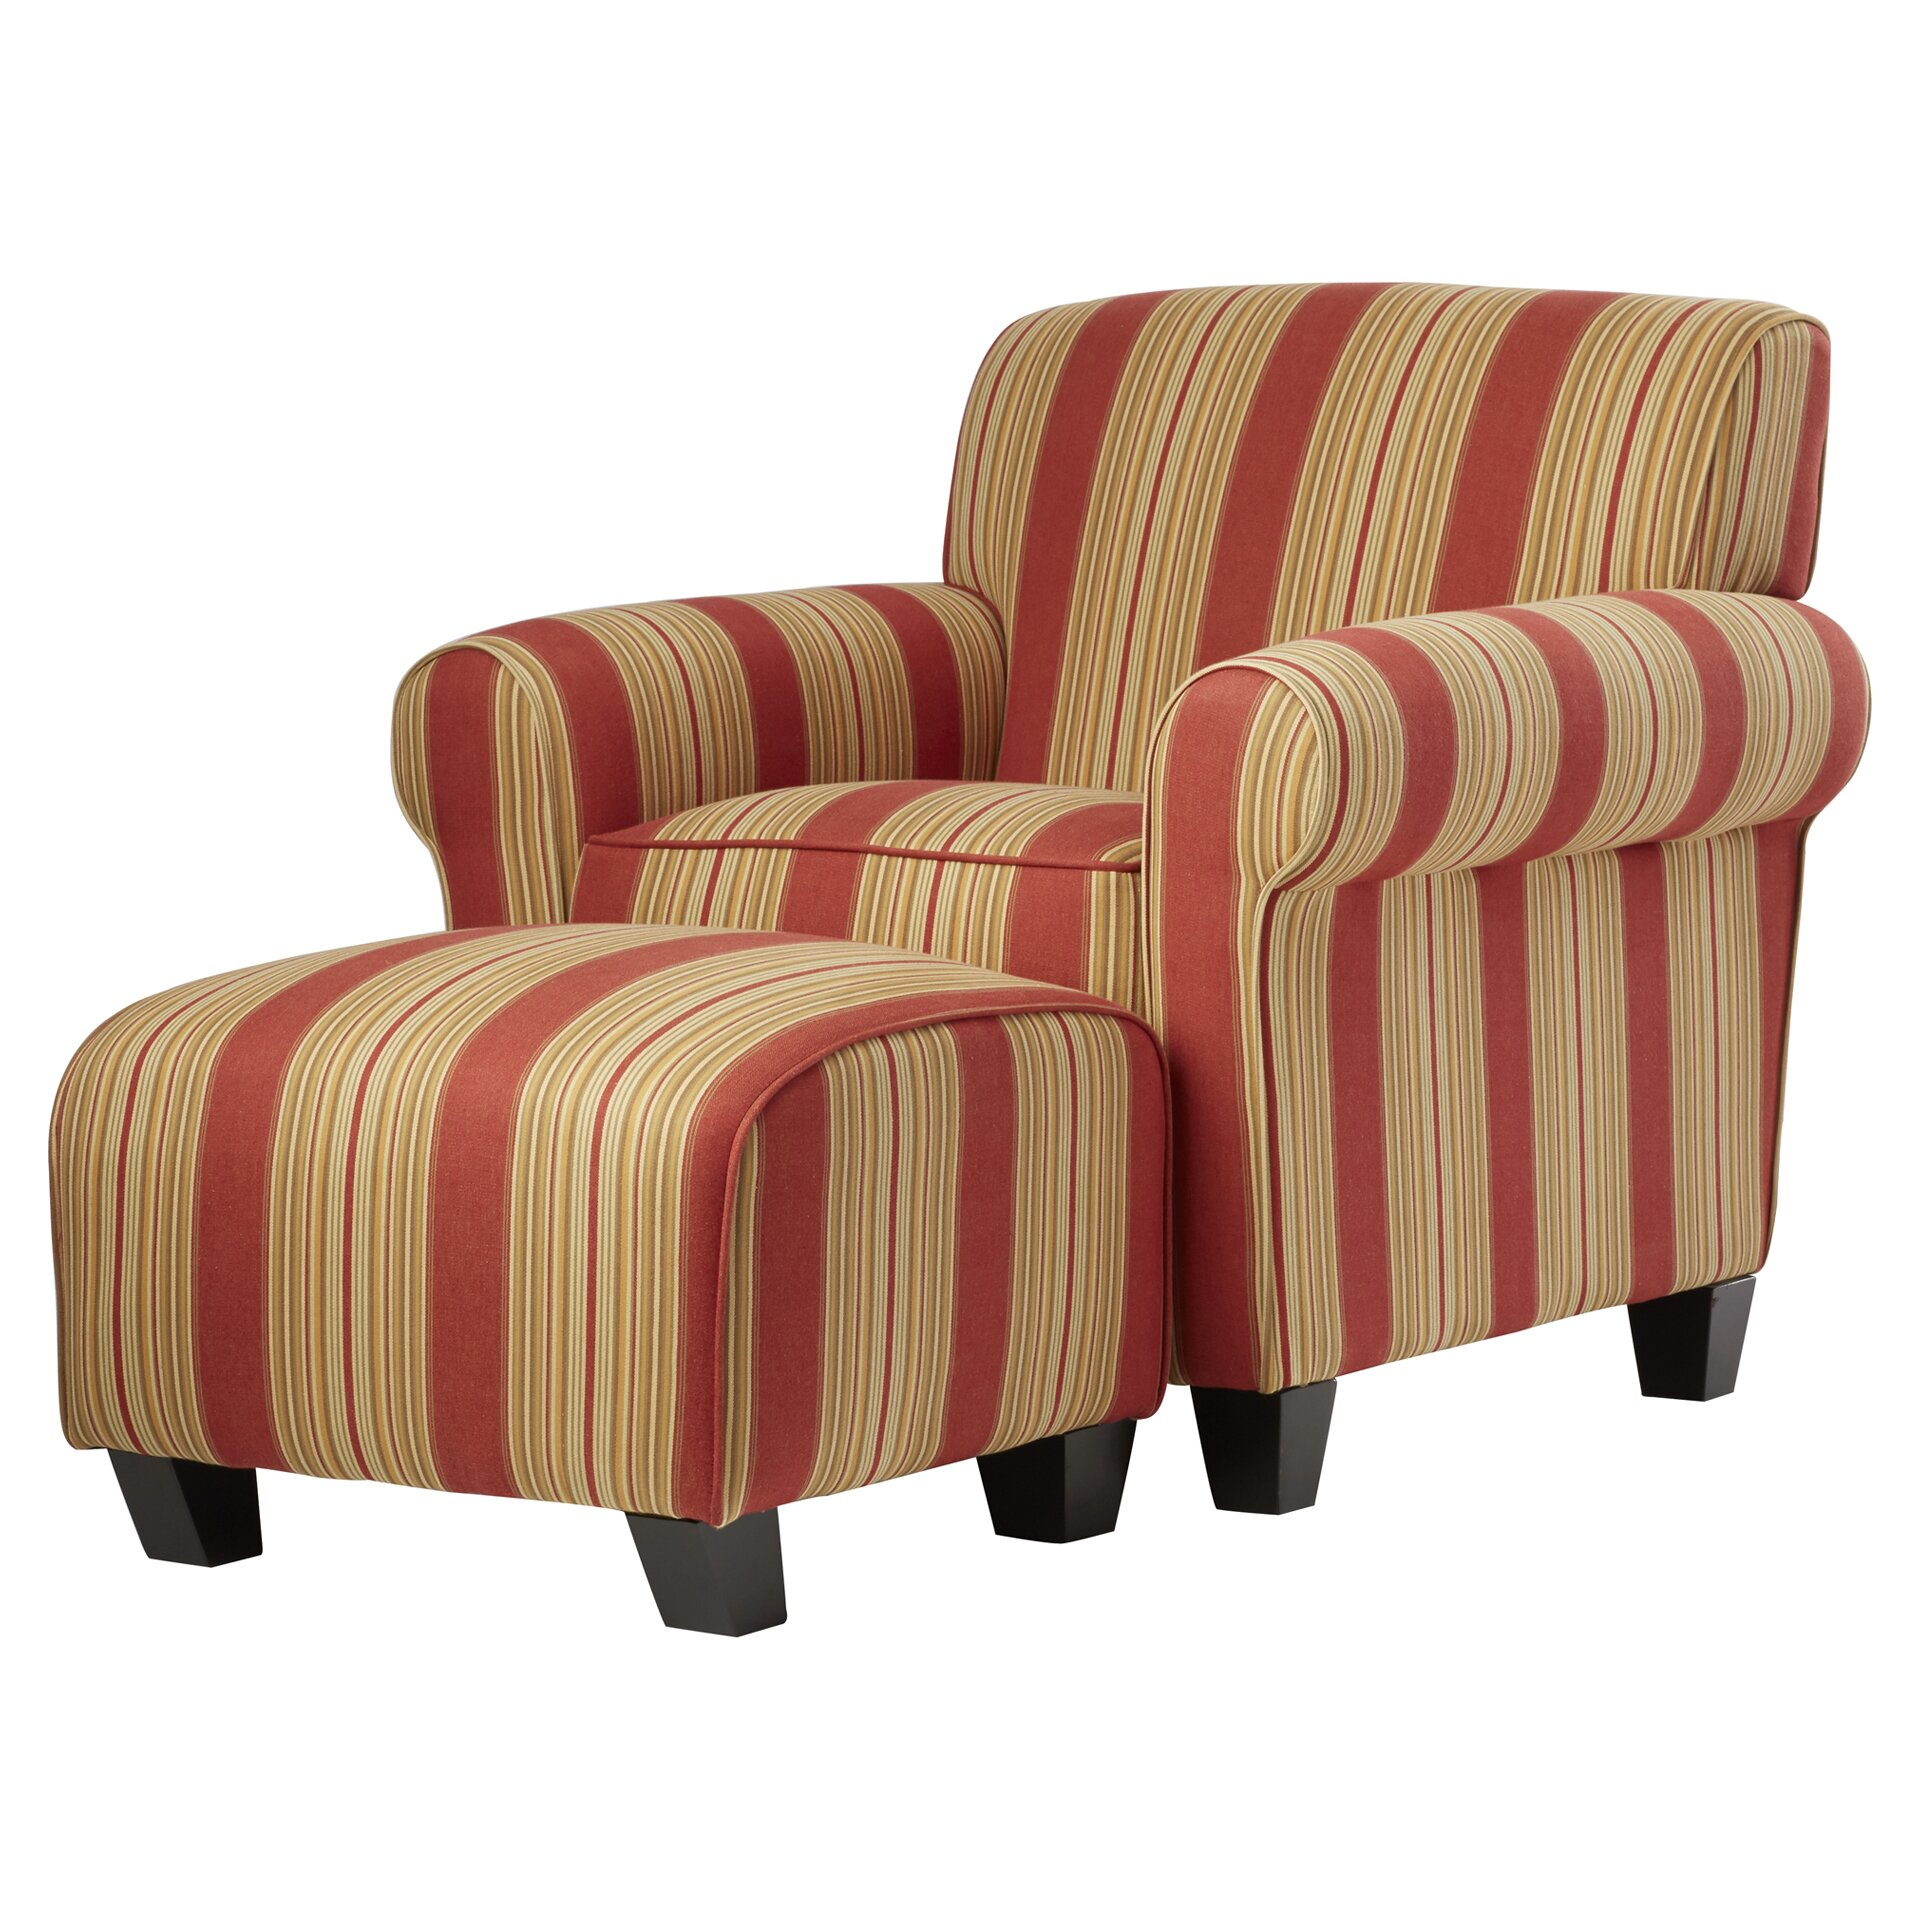 Red barrel studio raven chair and ottoman reviews wayfair for Chair with ottoman